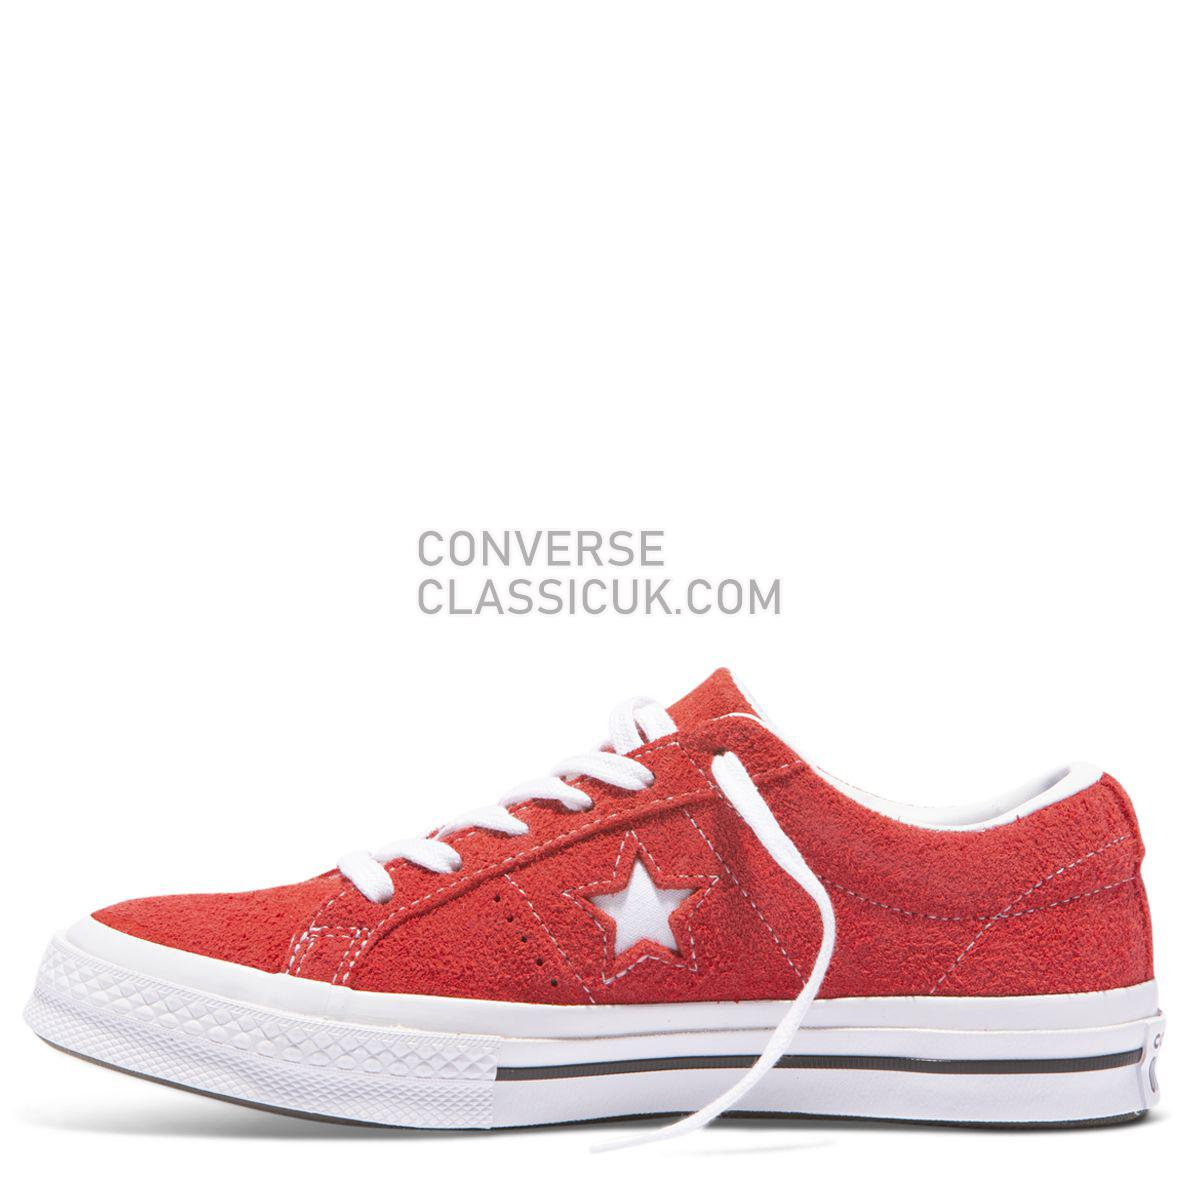 Converse Buy One Star Premium Suede Low Top Red Online Mens Womens Unisex 158434 Red/White Shoes